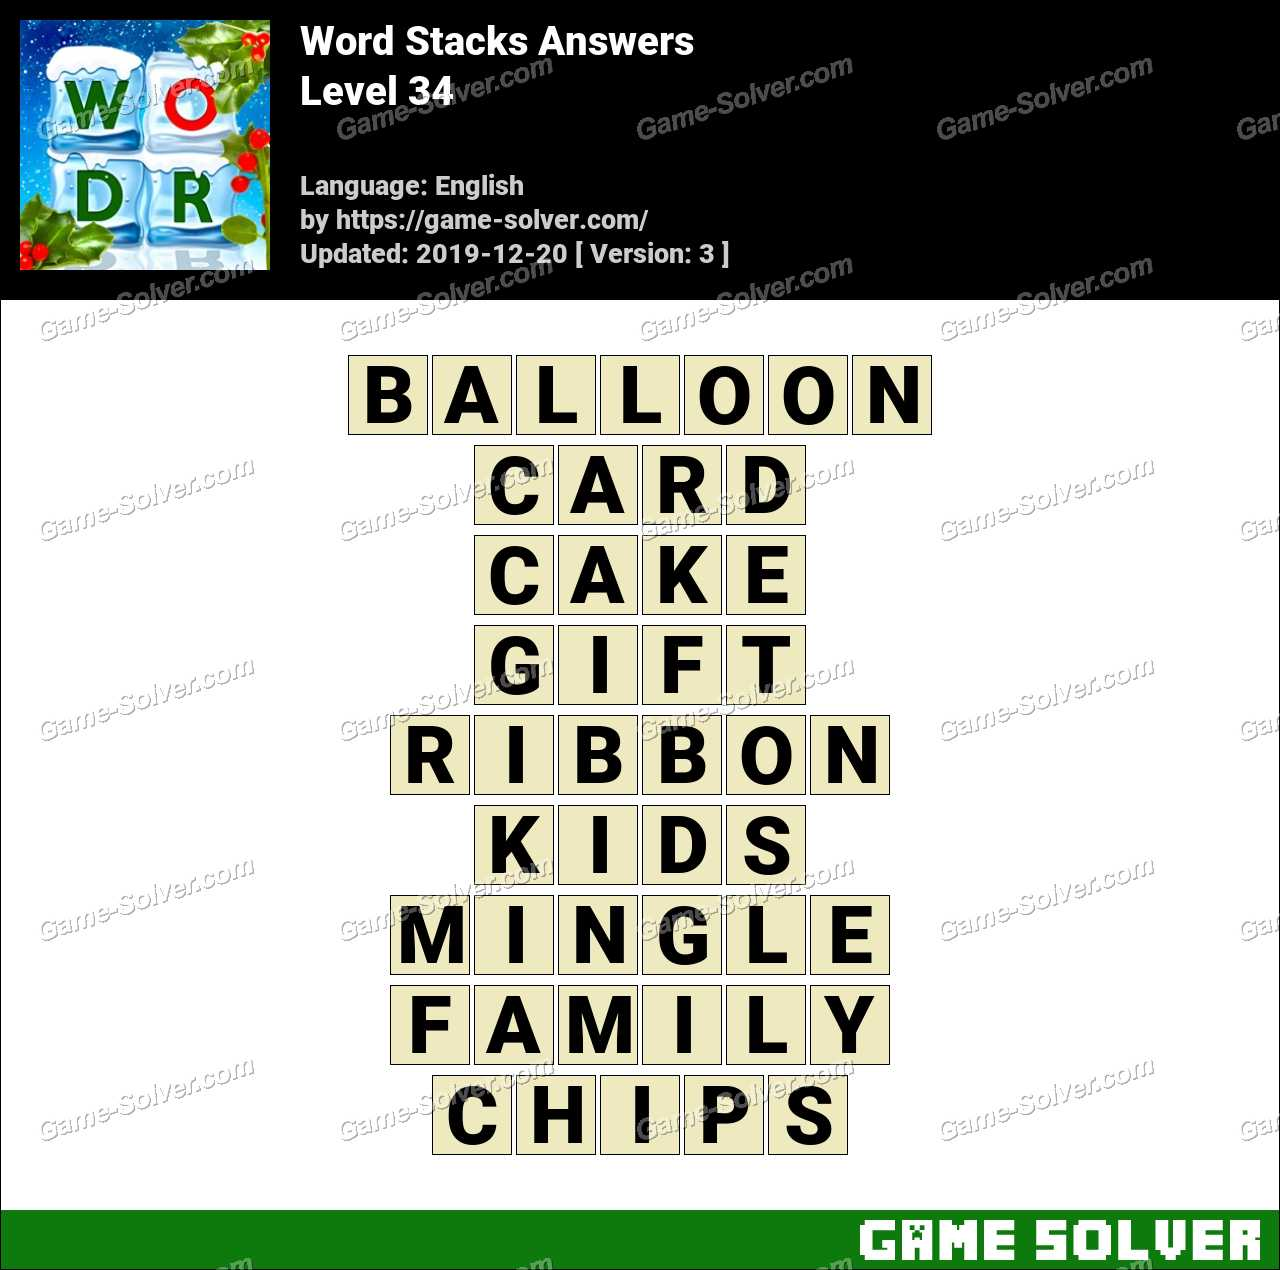 Word Stacks Level 34 Answers